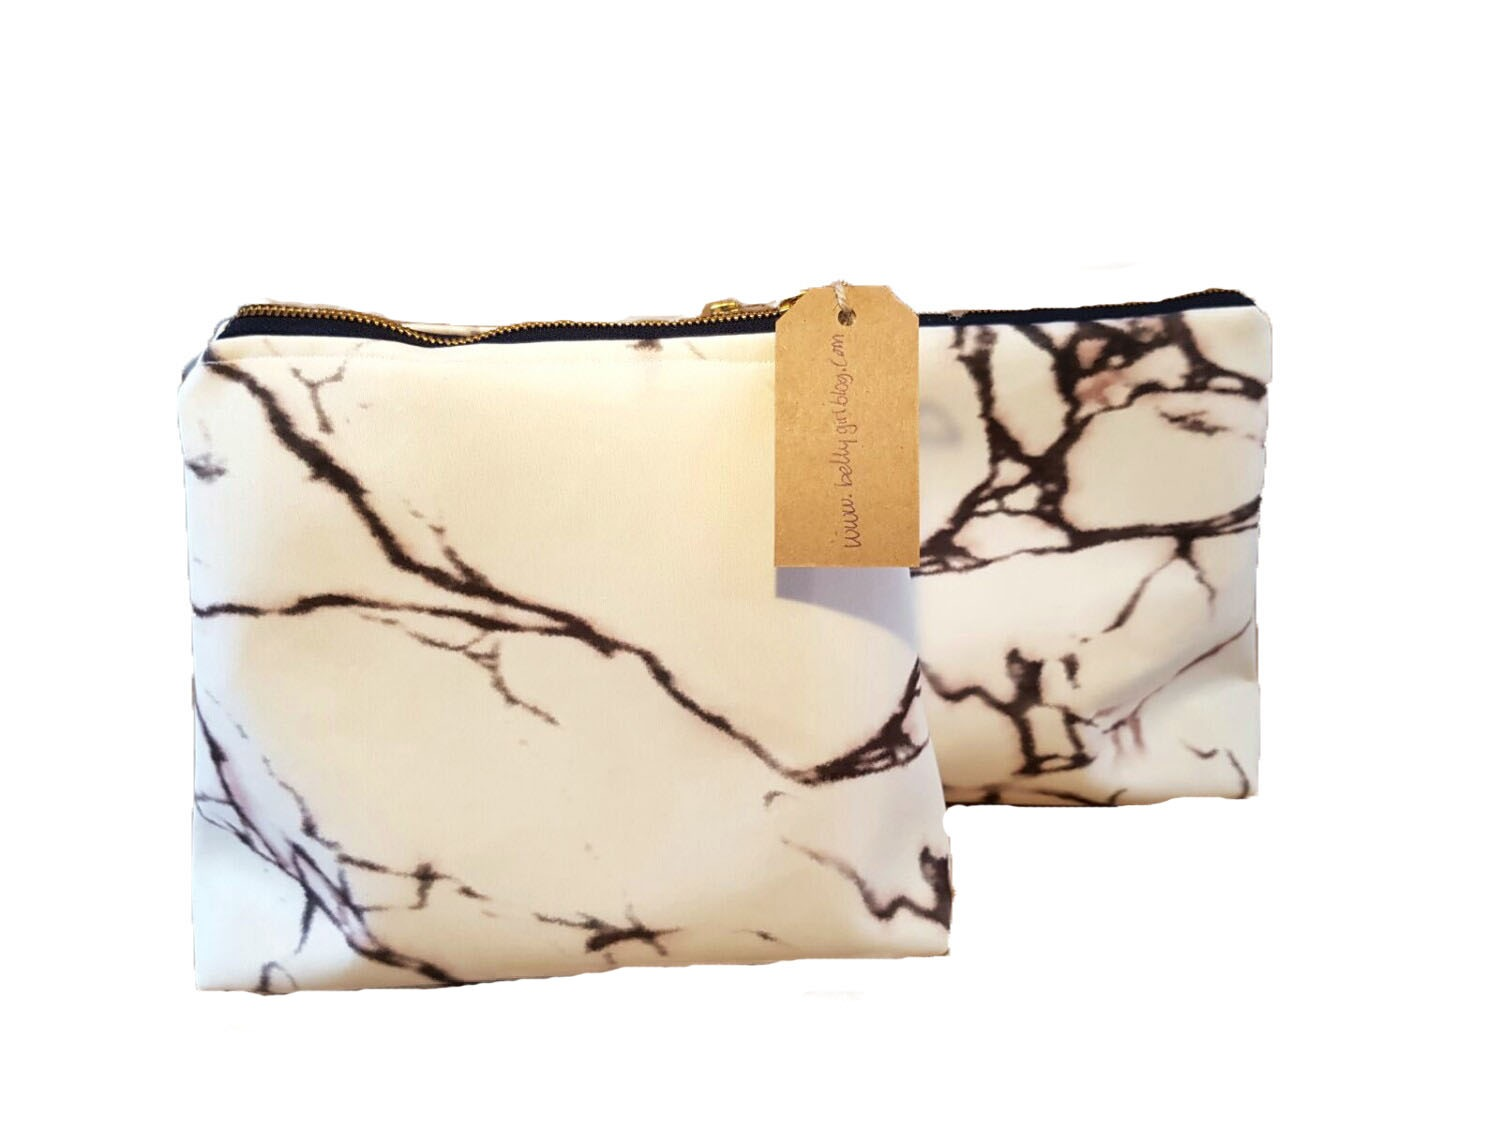 Hand made Marble bags by Iris Gerits